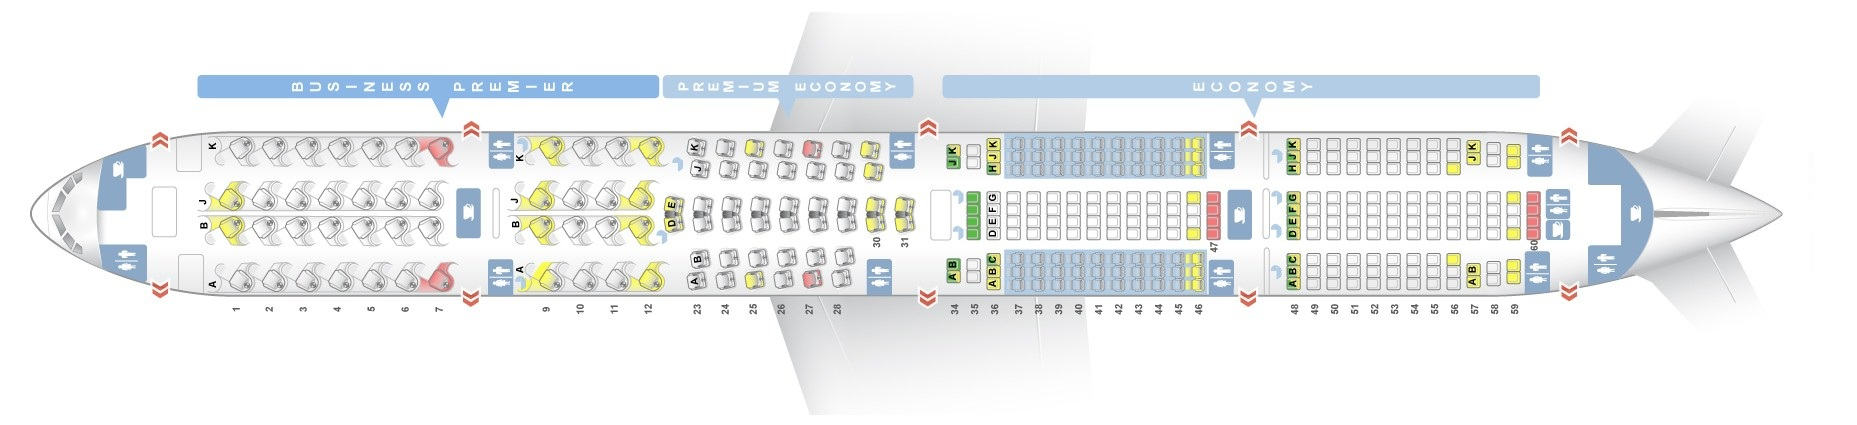 Seat map Boeing 777-300 Air New Zealand. Best seats in the plane